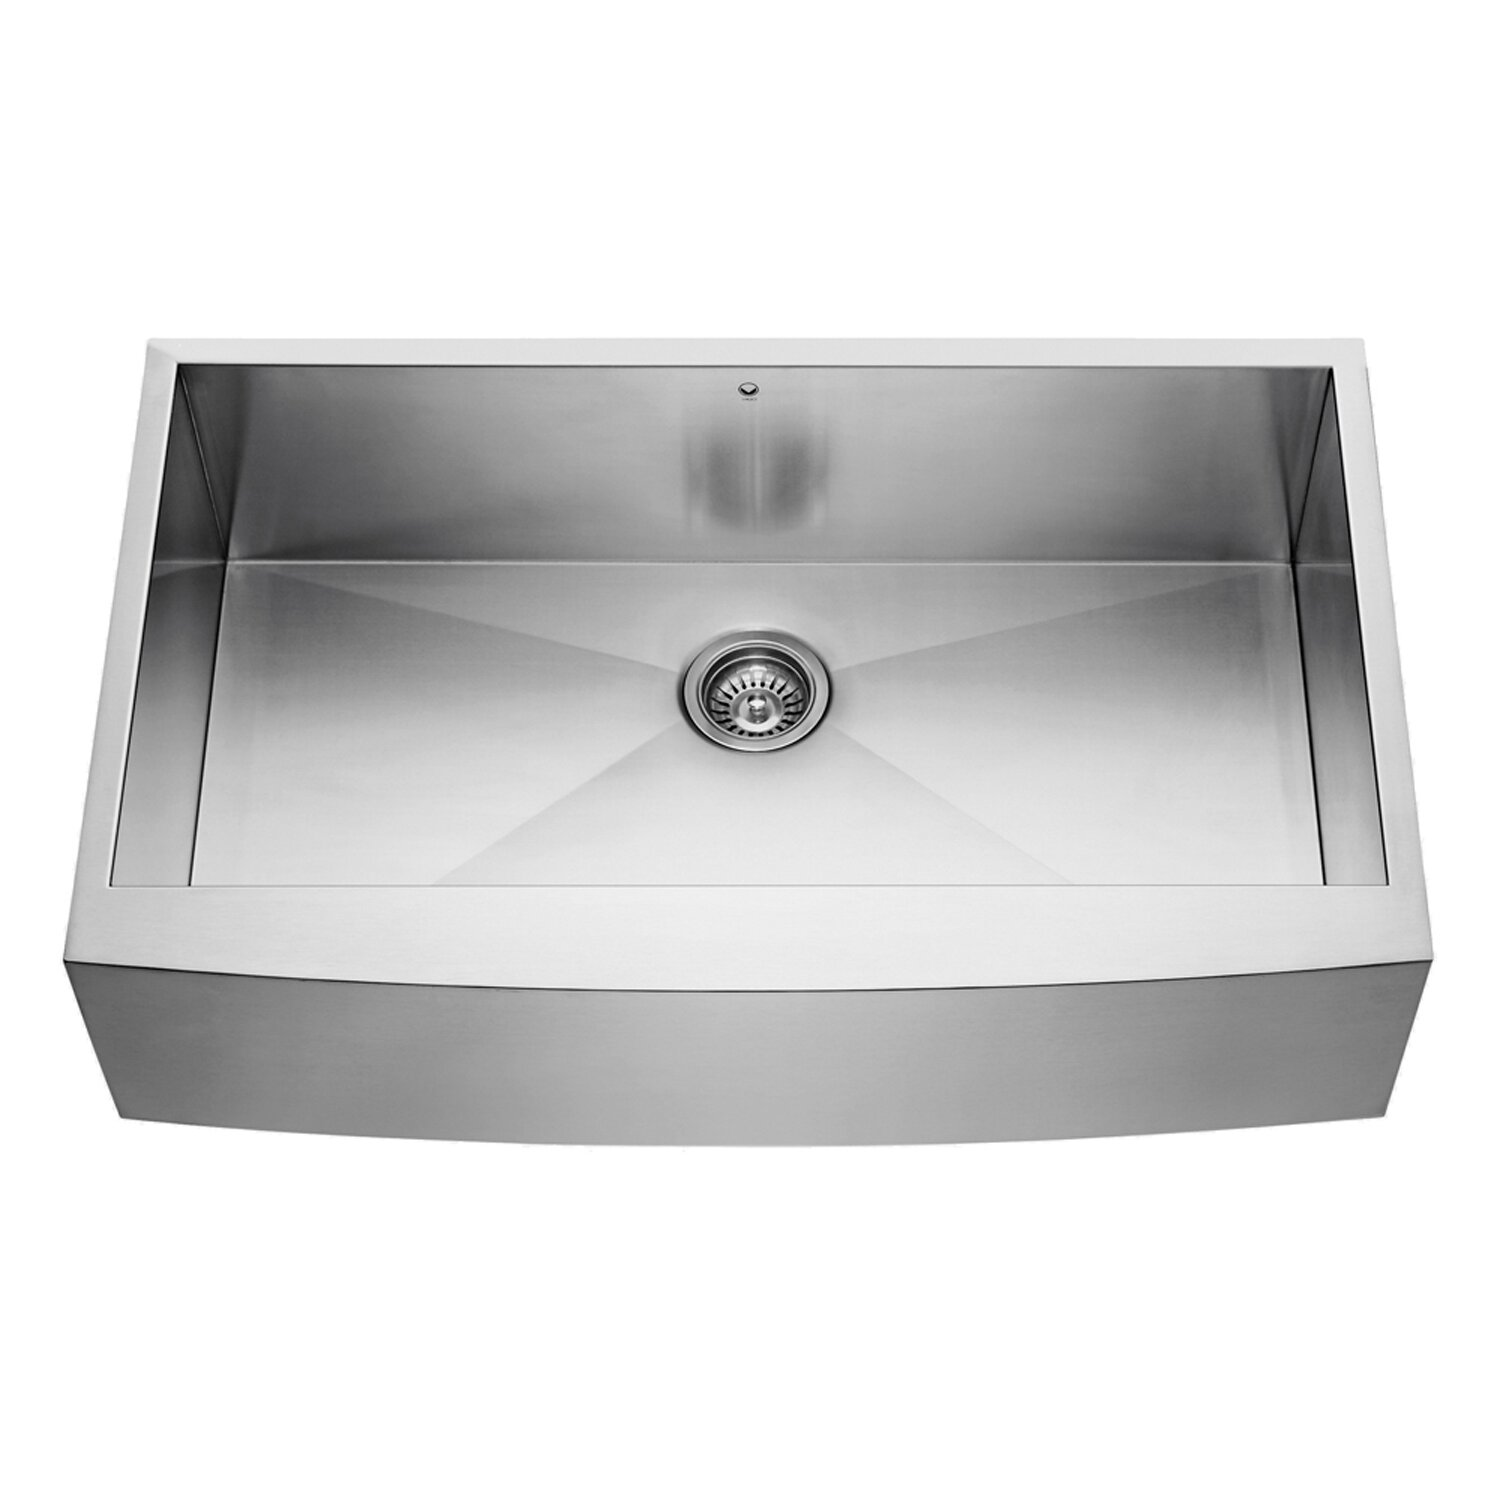 Farmhouse Apron Kitchen Sinks Vigo 36 Inch Farmhouse Apron Single Bowl 16 Gauge Stainless Steel